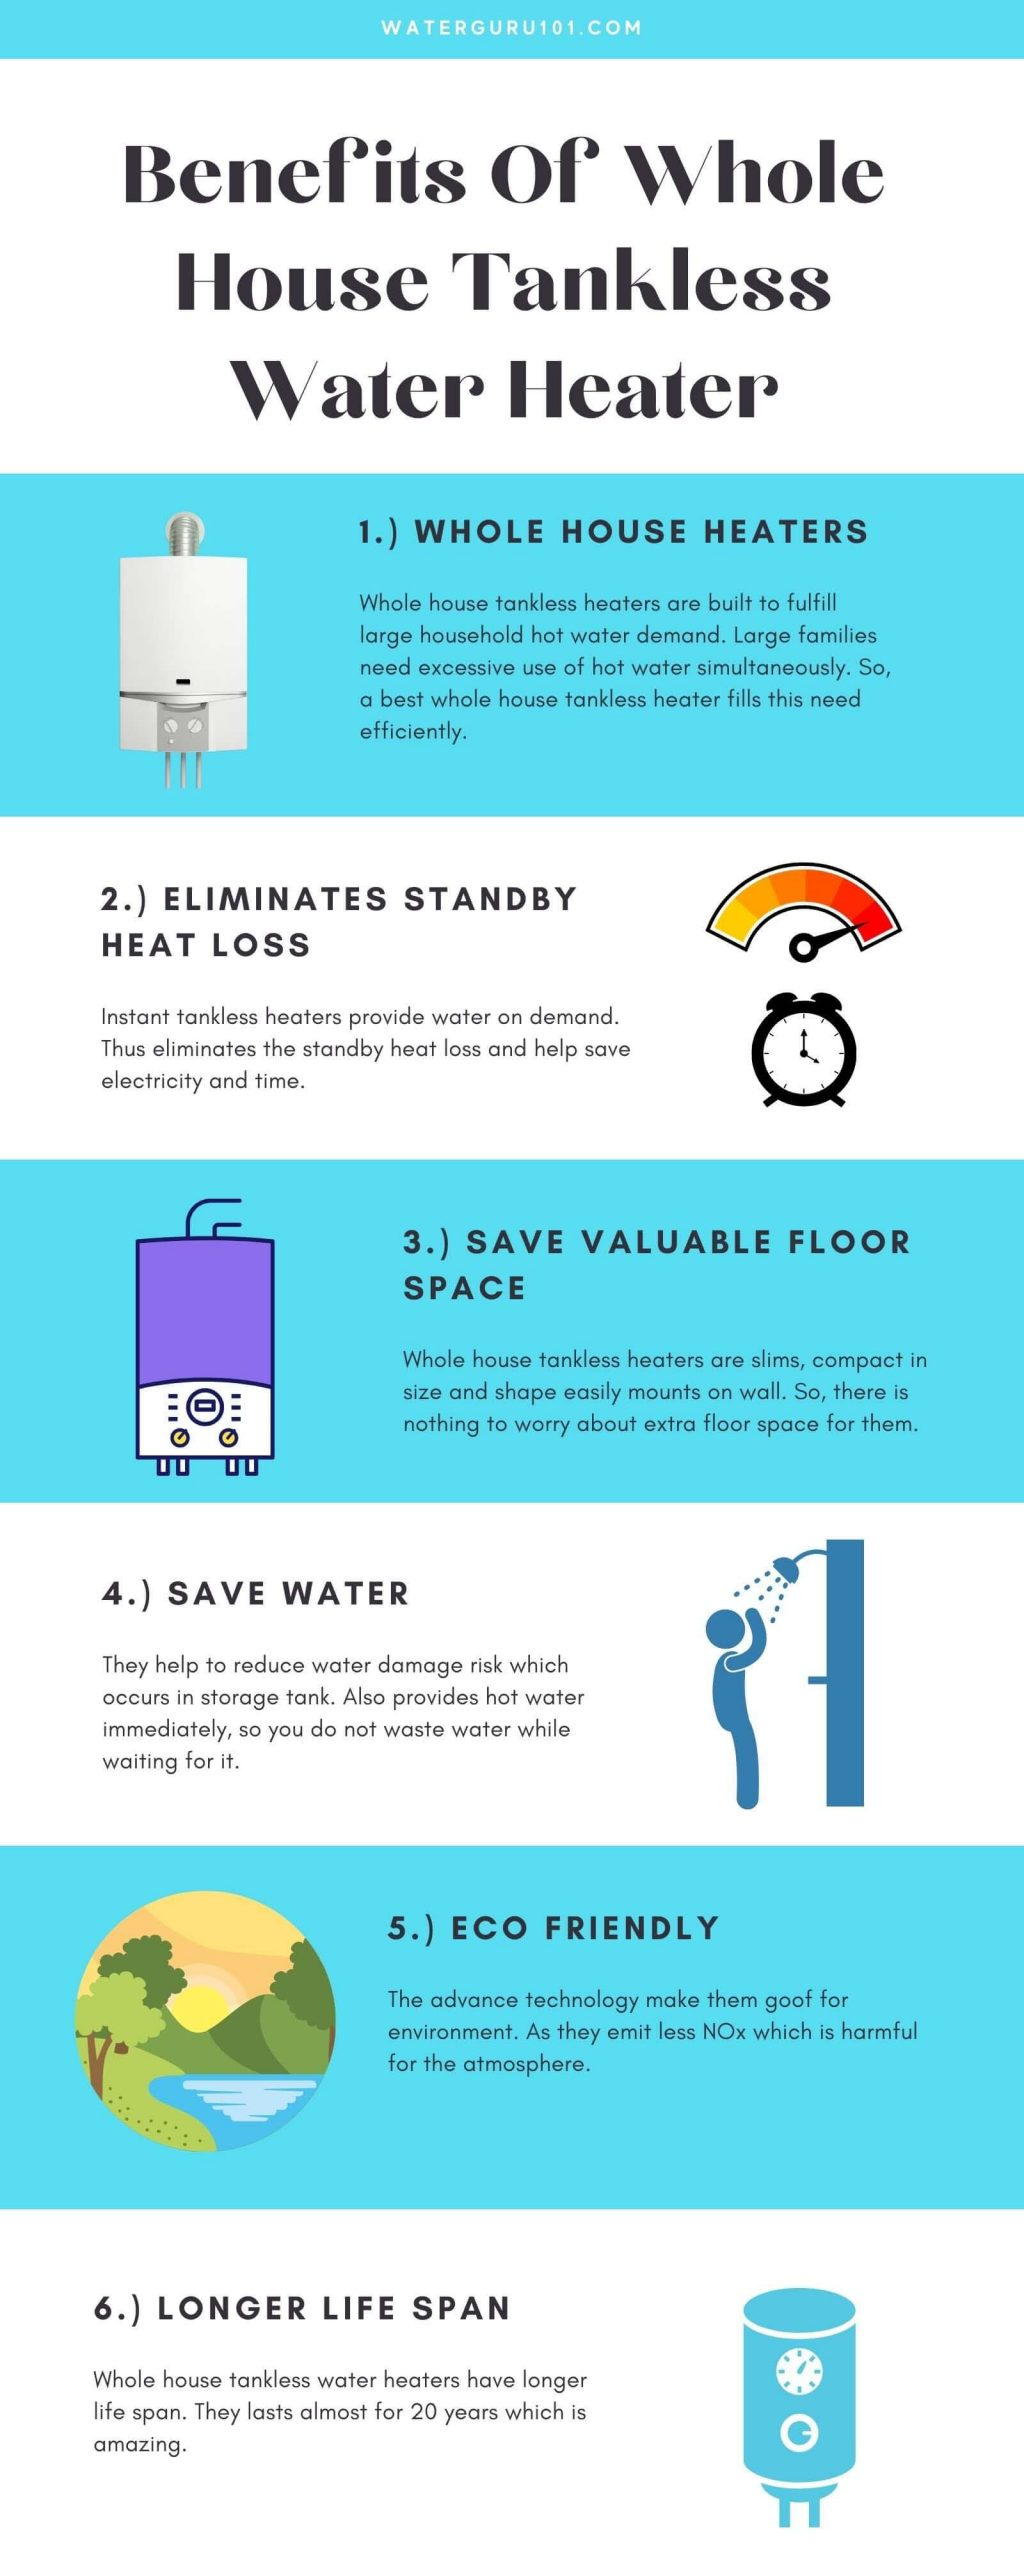 Advantages of whole house tankless water heaters